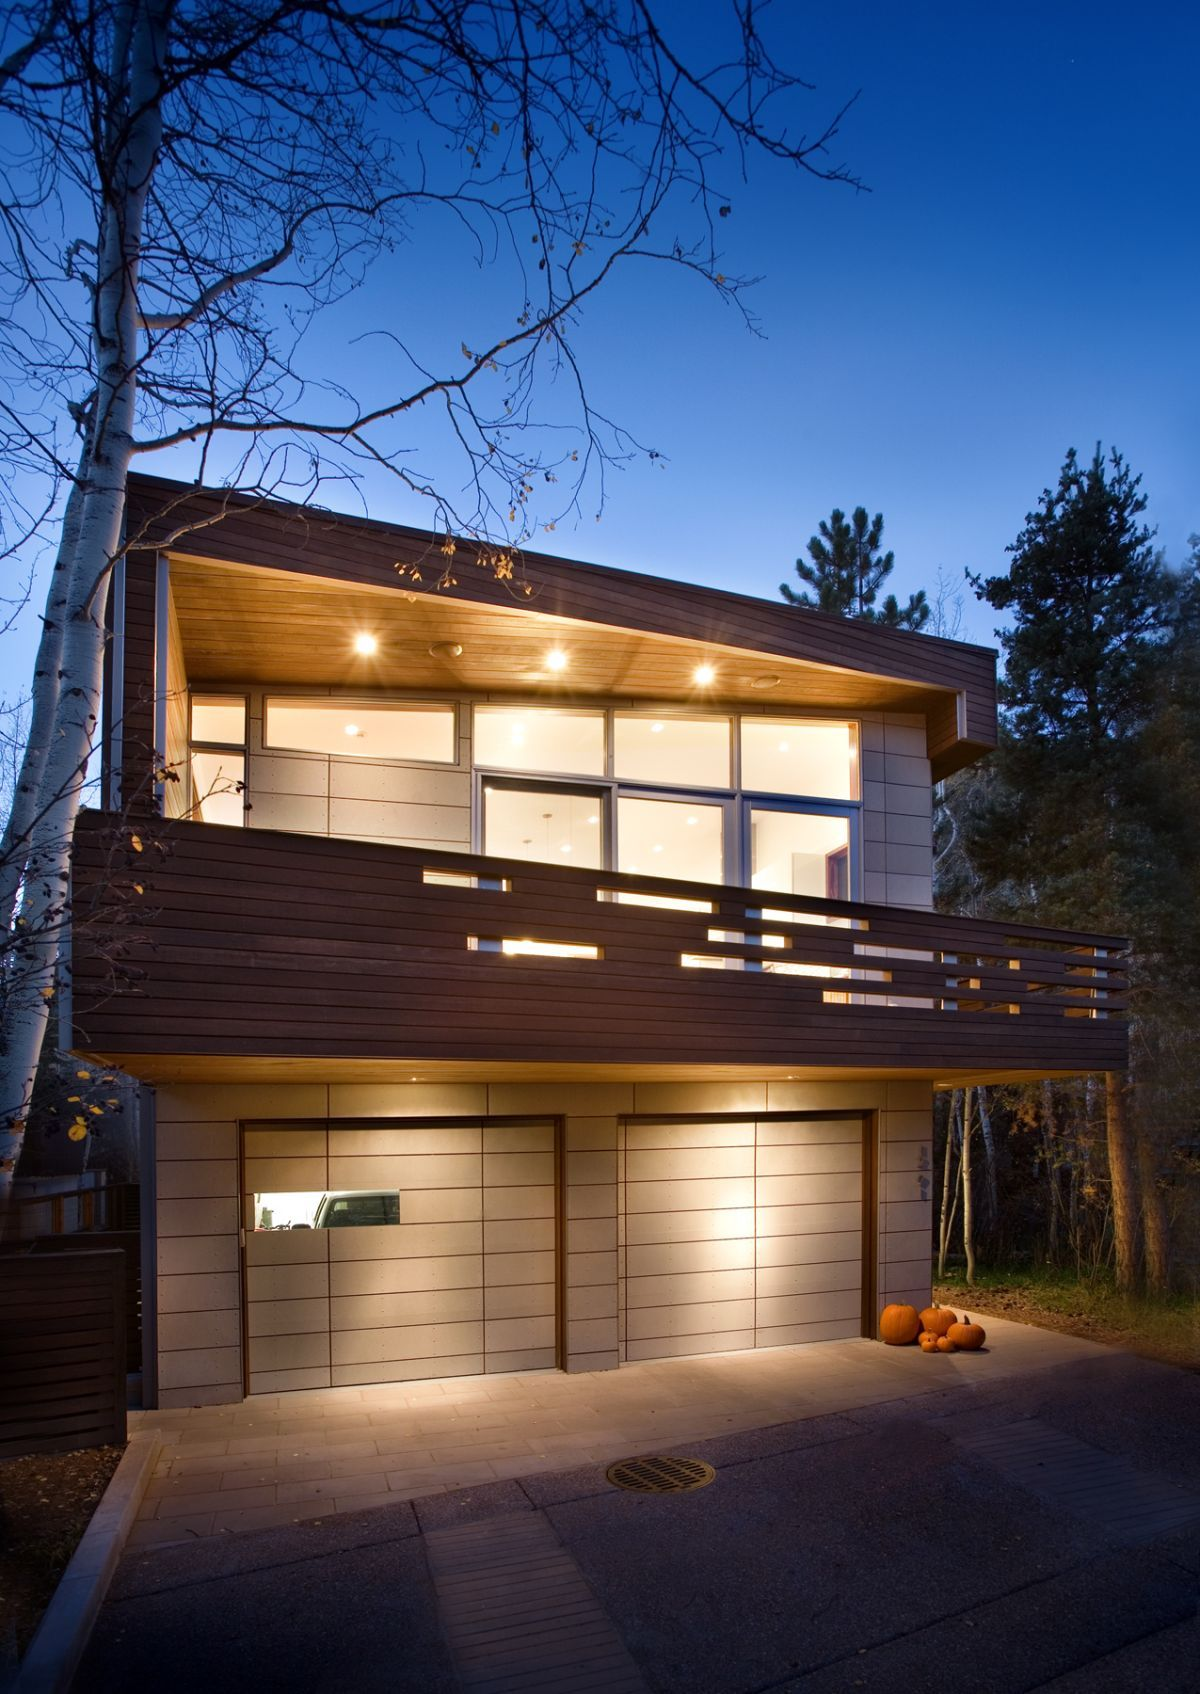 The kendrick house by studio b architects modern spaces i love